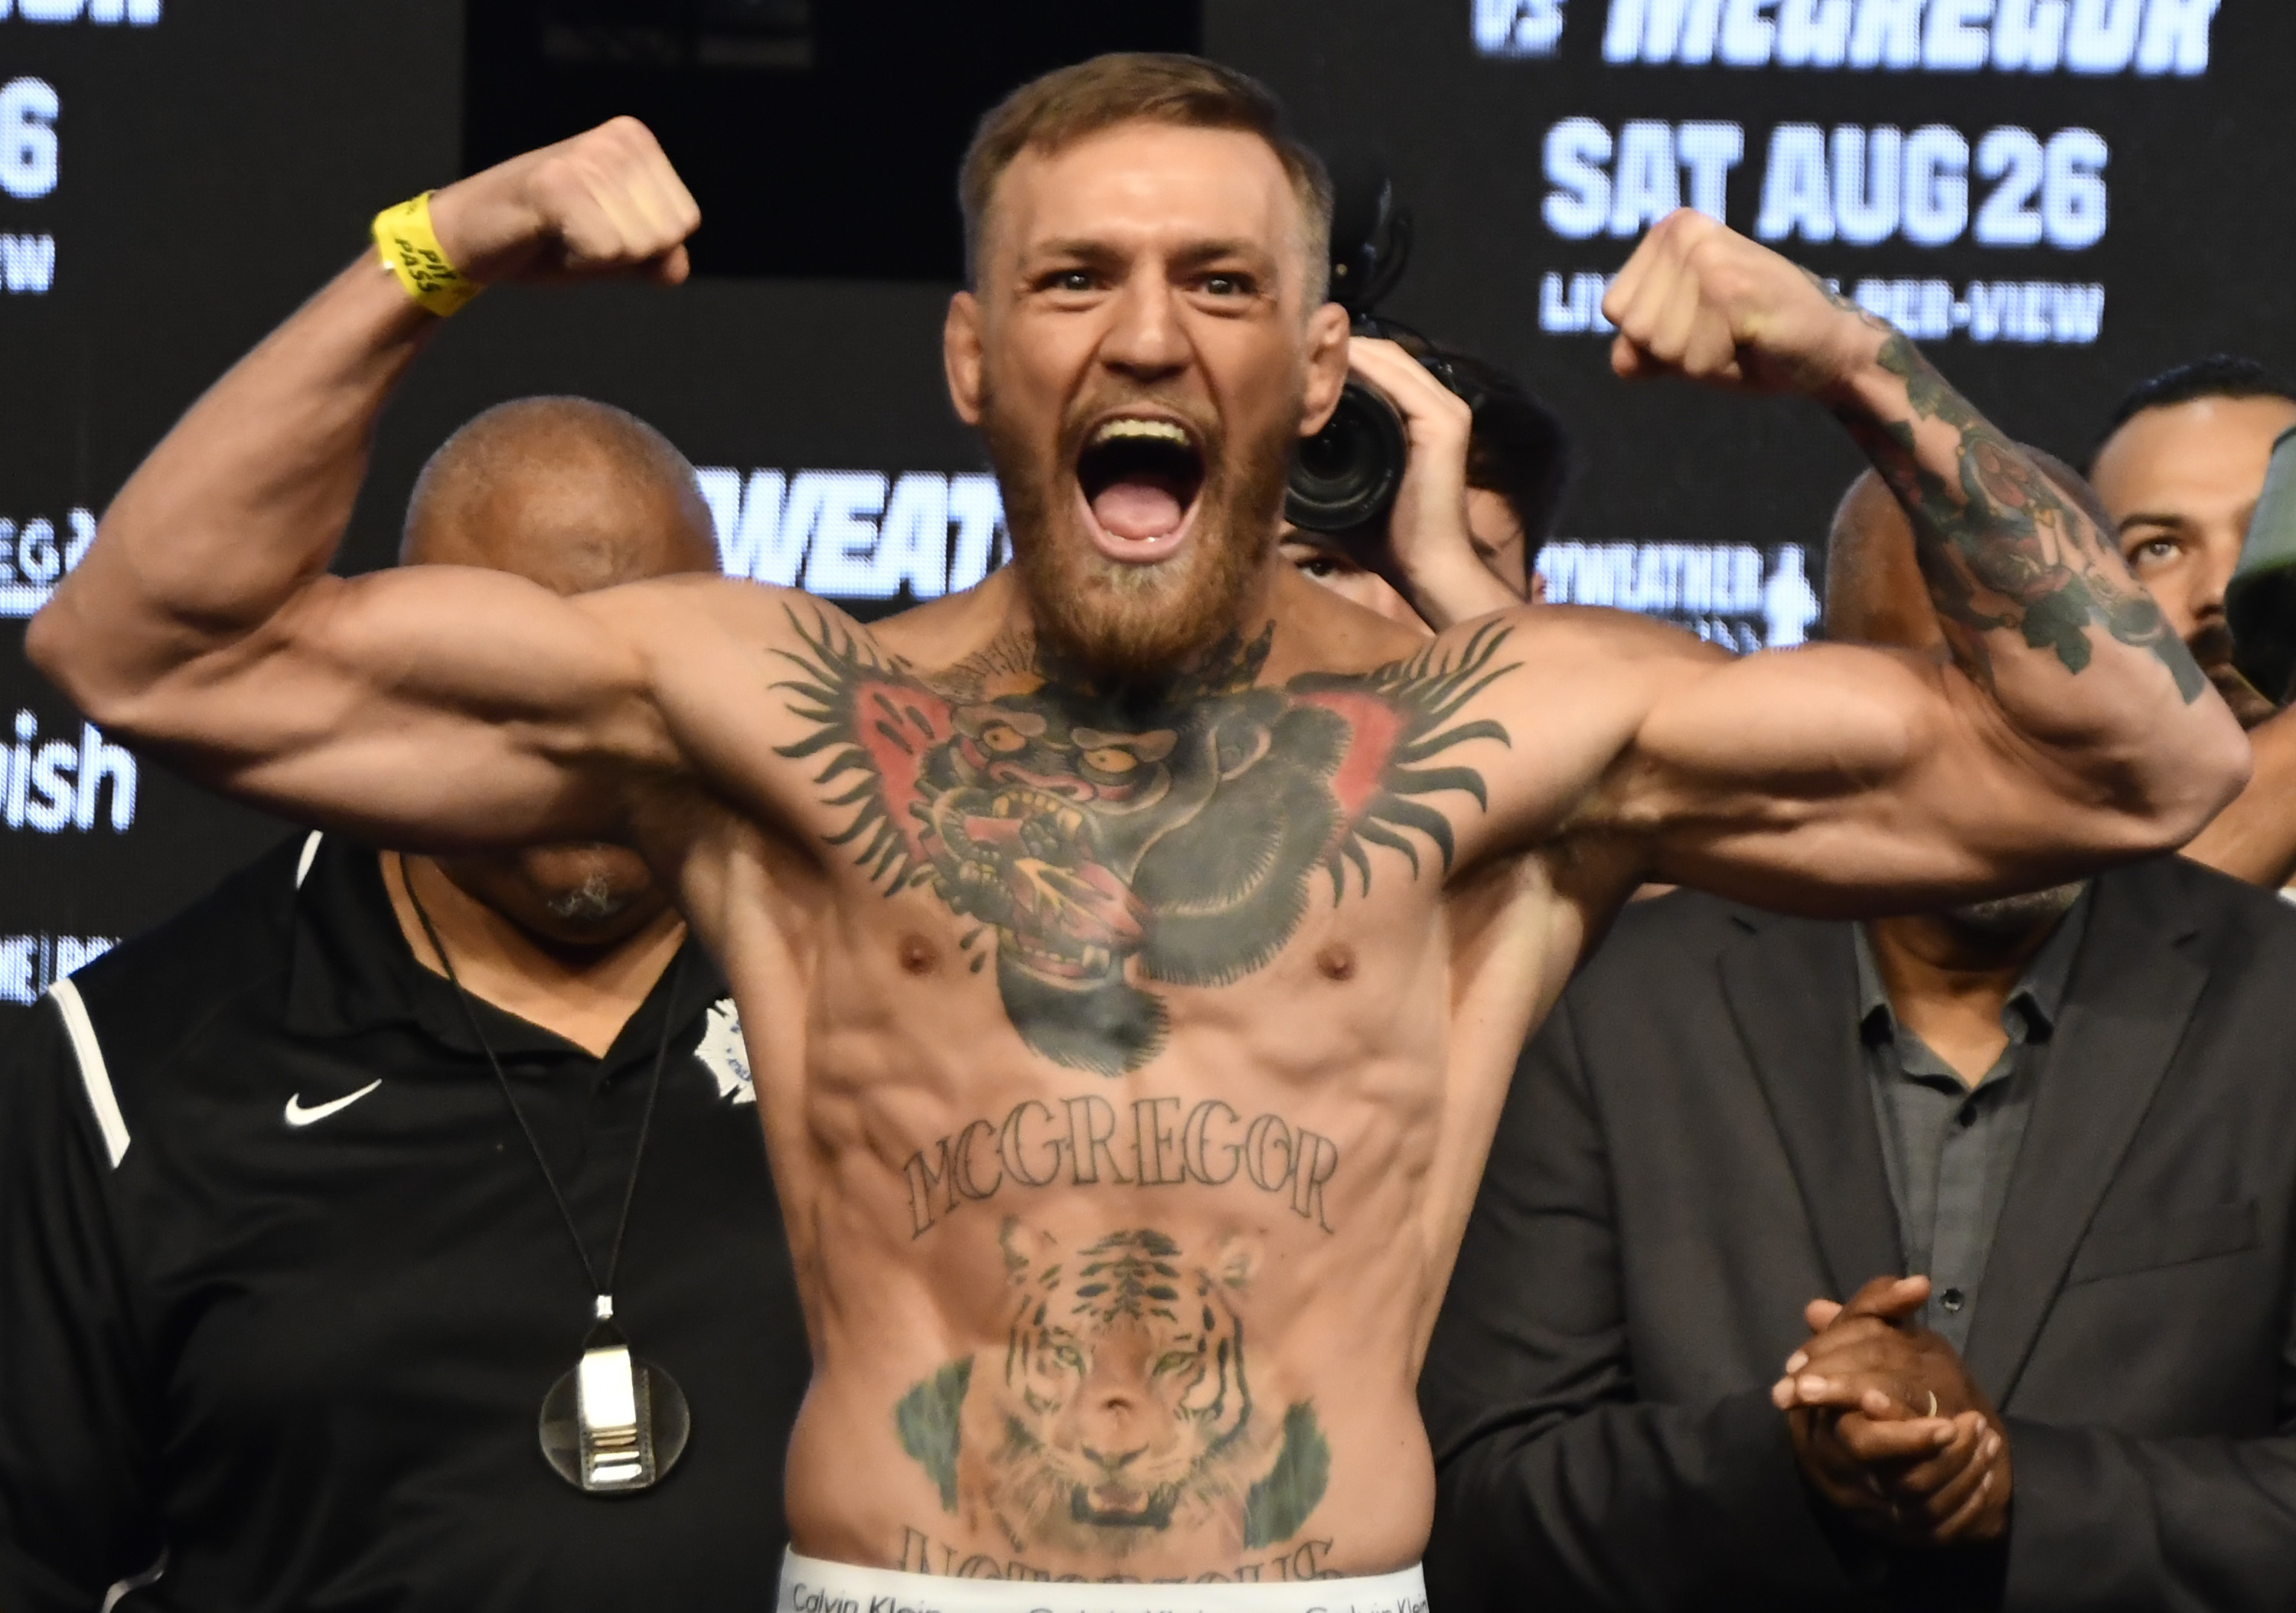 McGregor says MMA, not Pacquiao, is next on agenda